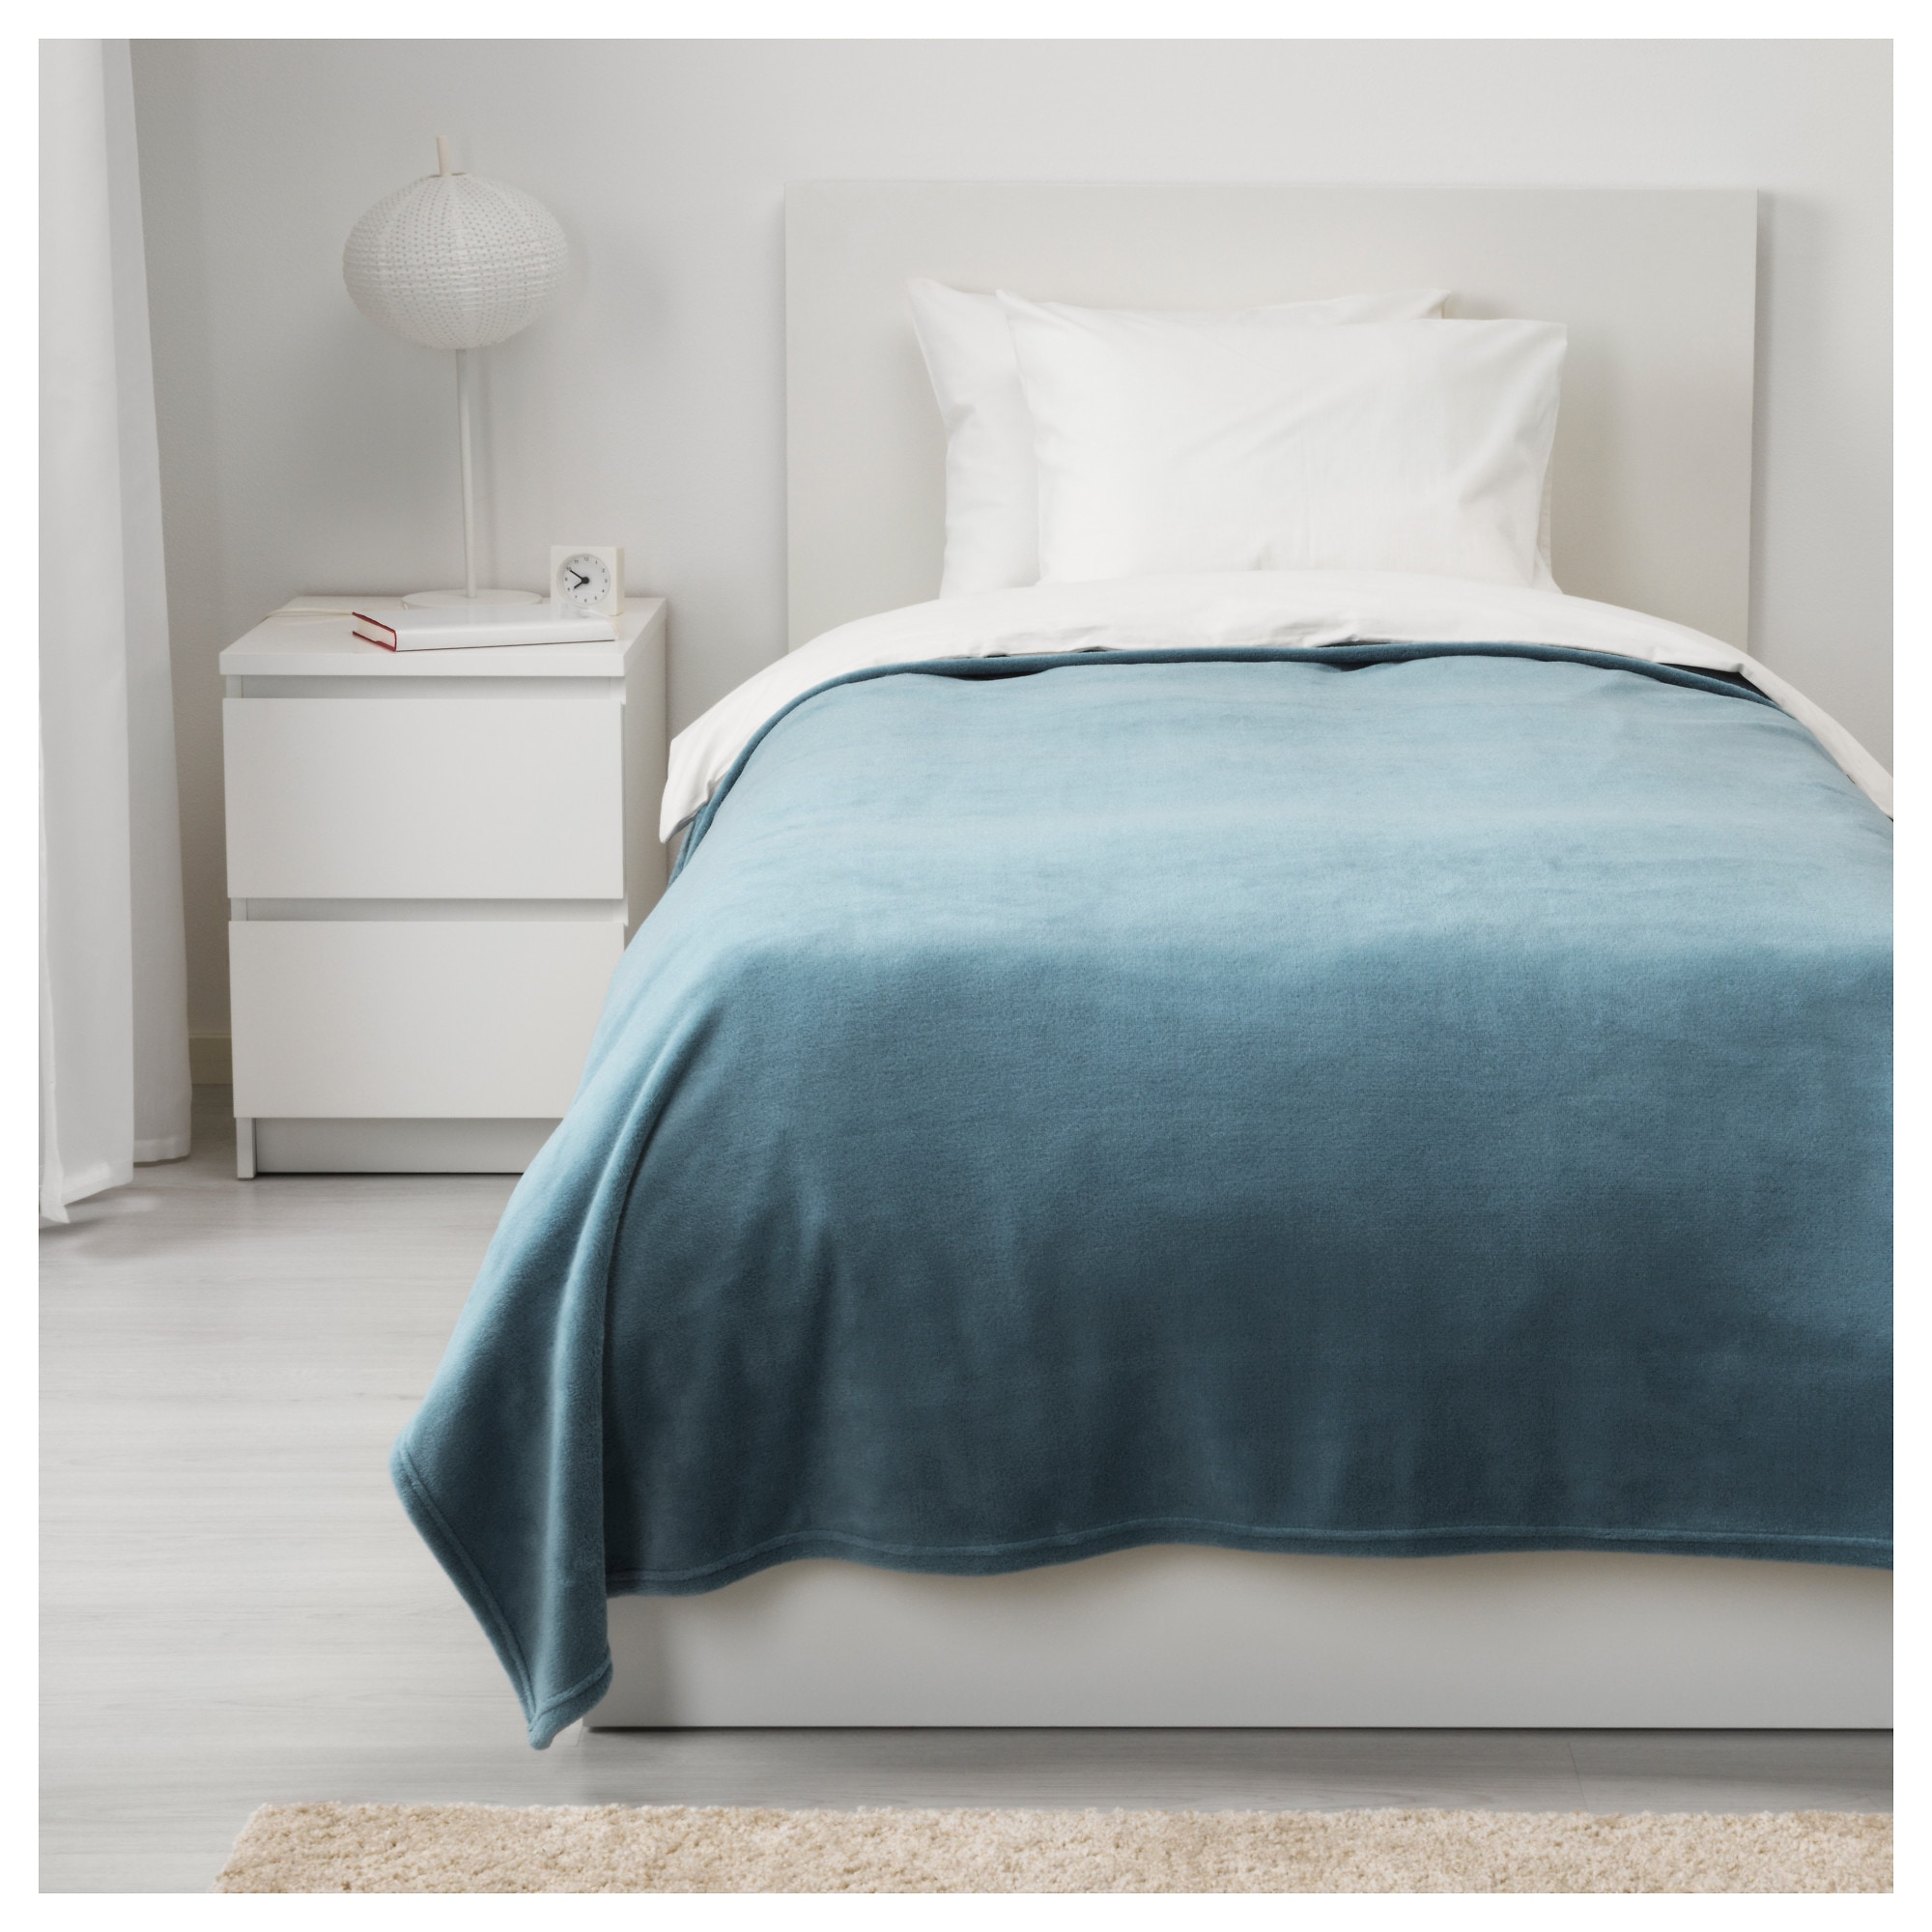 Bedspread TRATTVIVA light blue